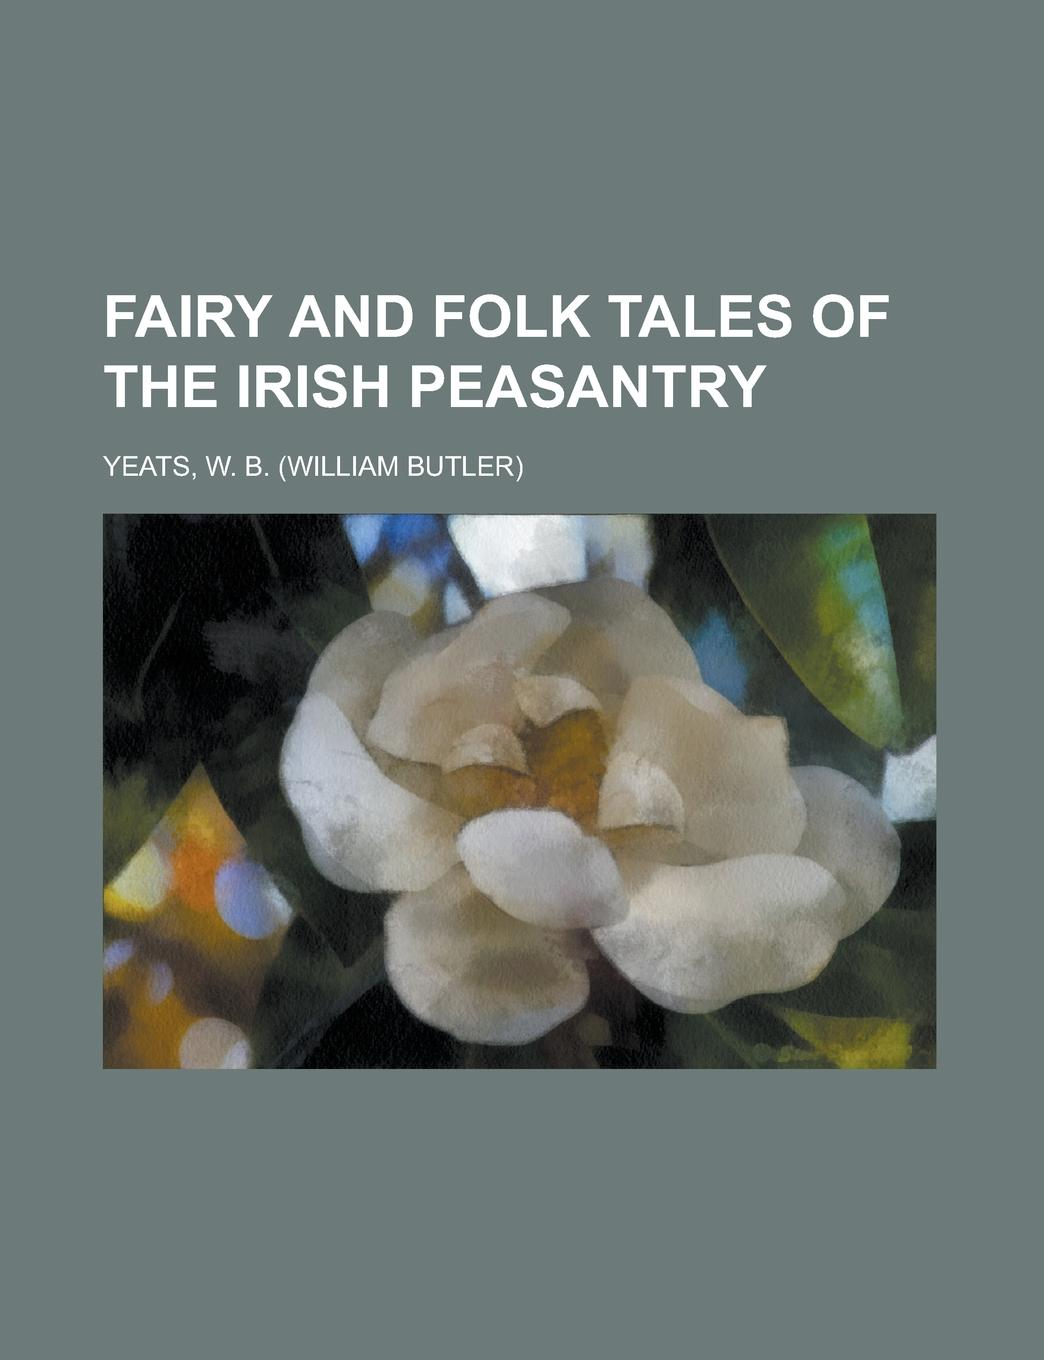 William Butler Yeats Fairy and Folk Tales of the Irish Peasantry